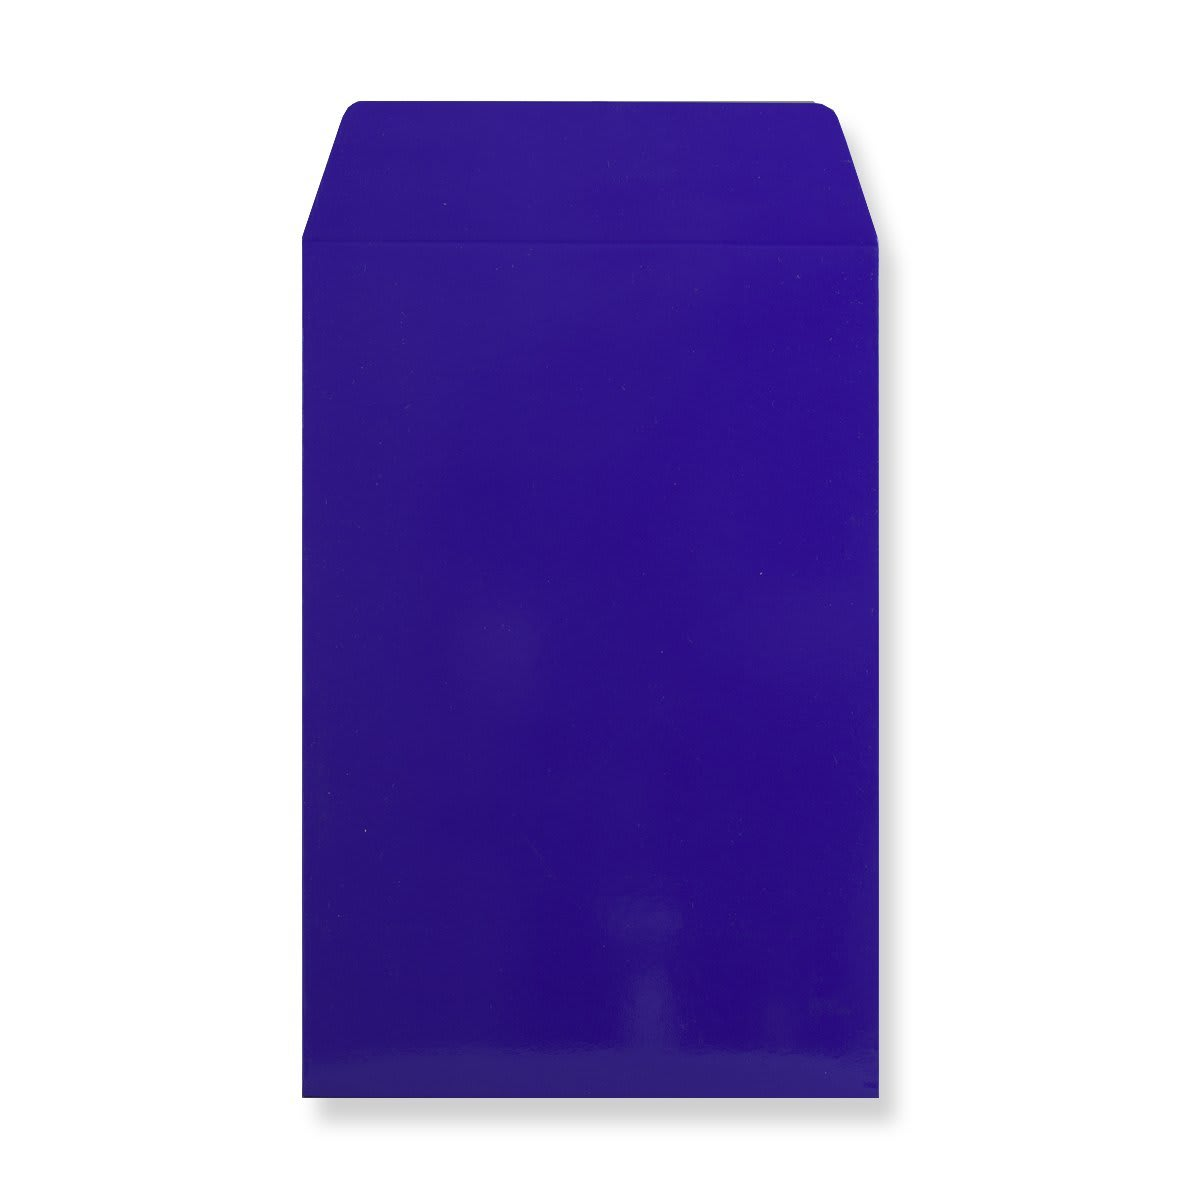 C5 BLUE ALL BOARD ENVELOPES